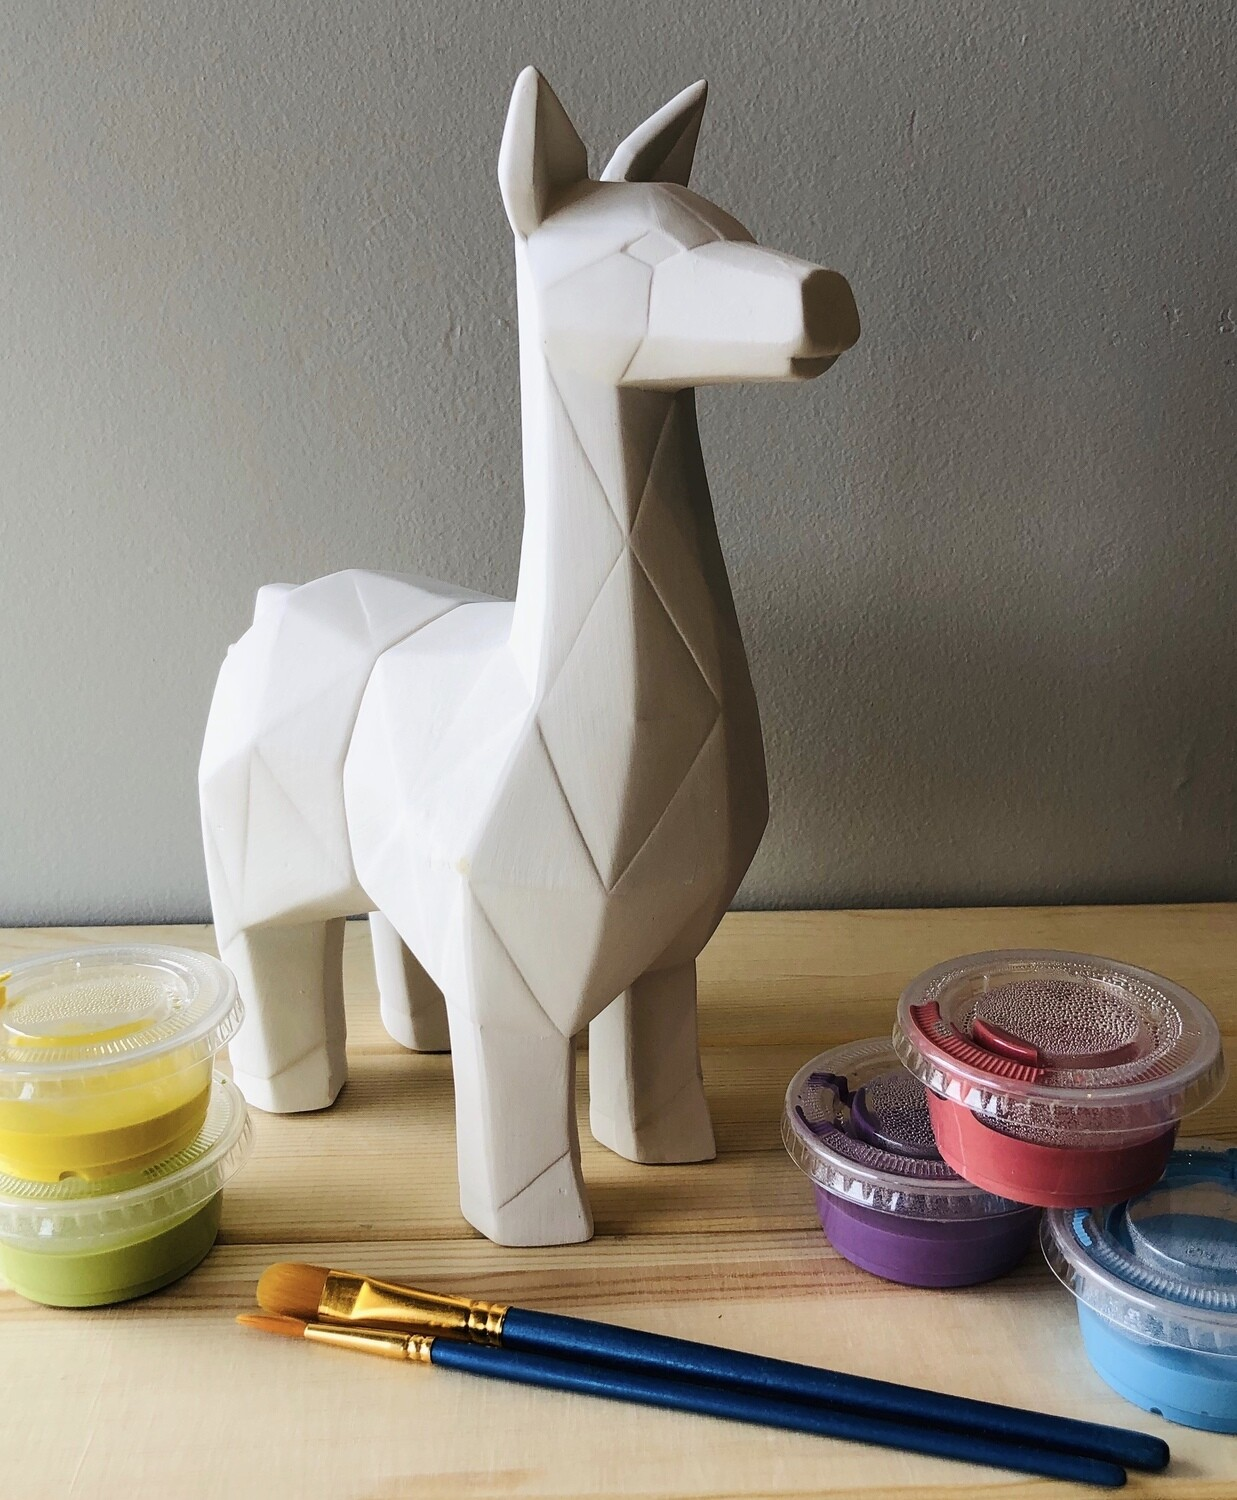 Take Home Faceted Llama with Glazes - Pick up Curbside